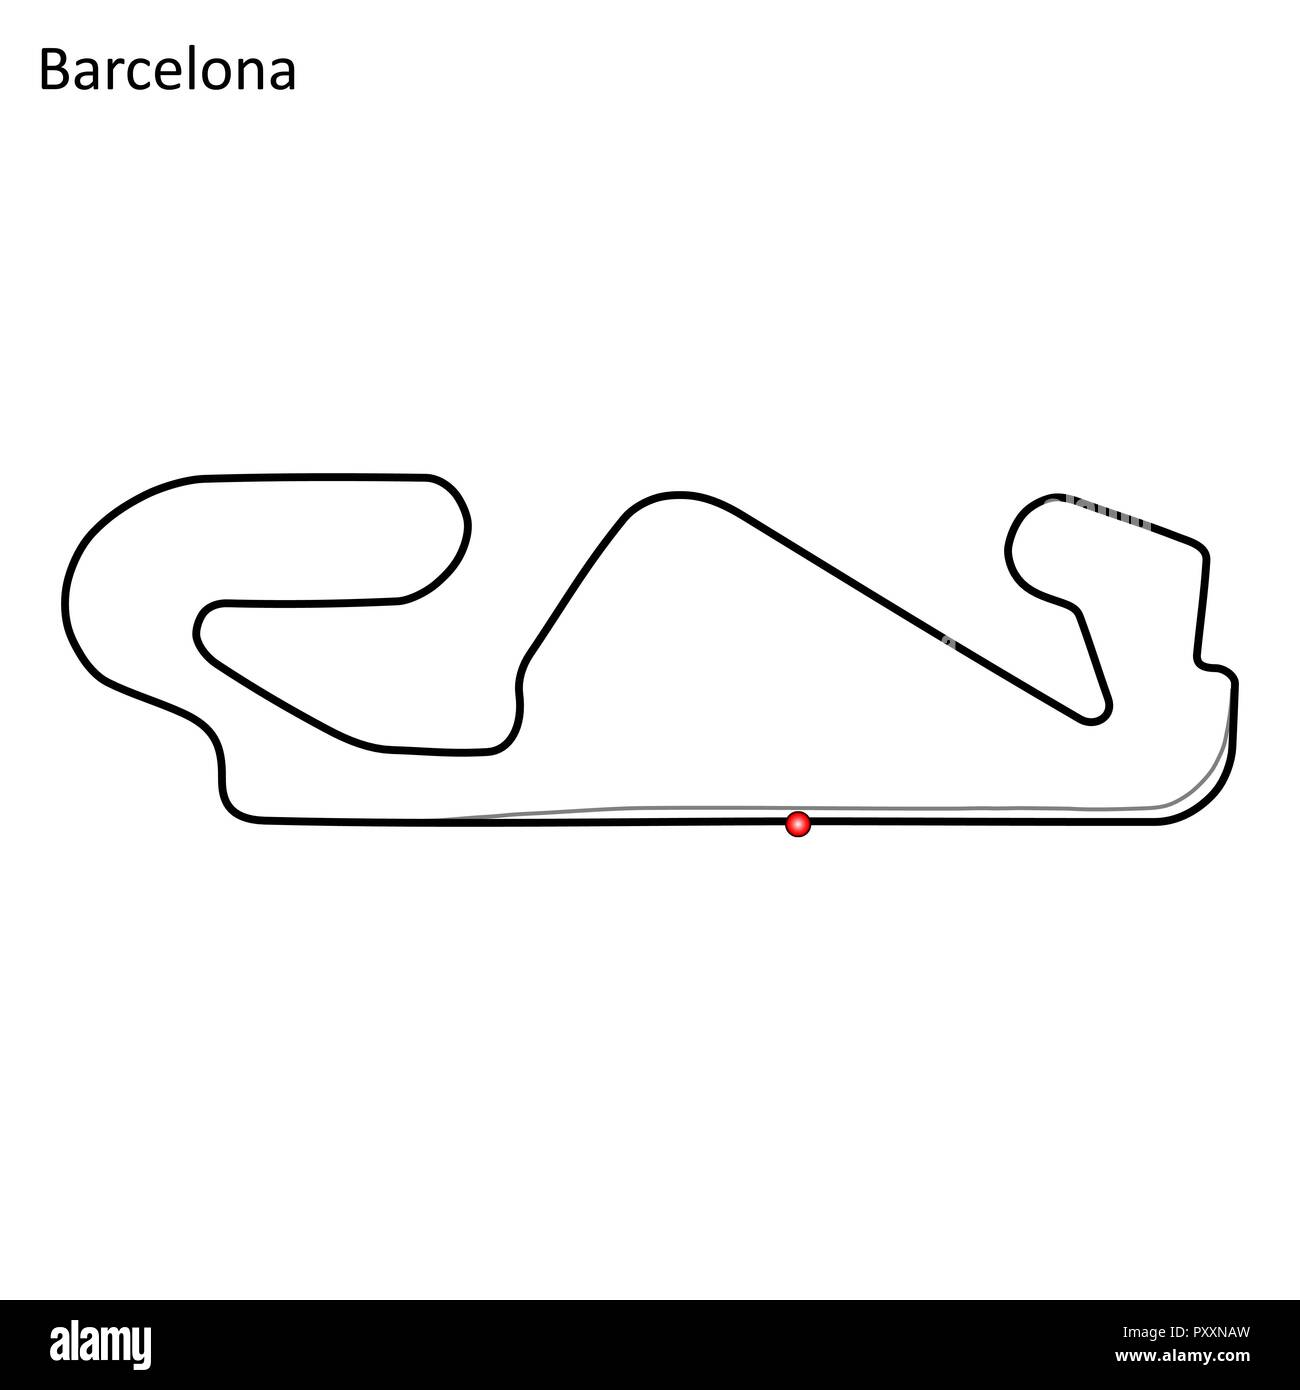 hight resolution of barcelona grand prix race track circuit for motorsport and autosport vector illustration